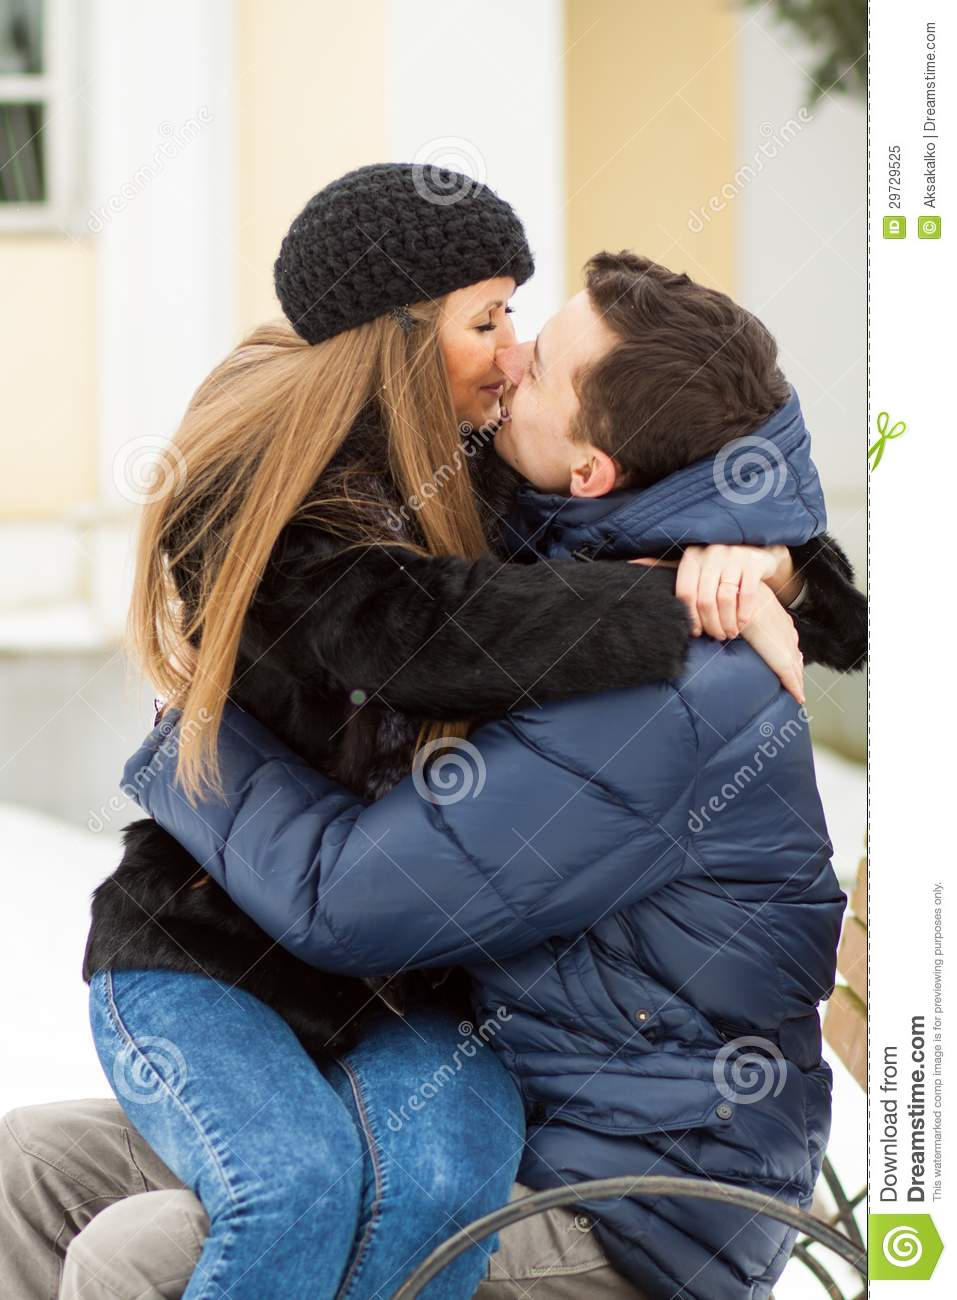 Lovers Kissing On The Bench Royalty Free Stock Photo - Image: 29729525